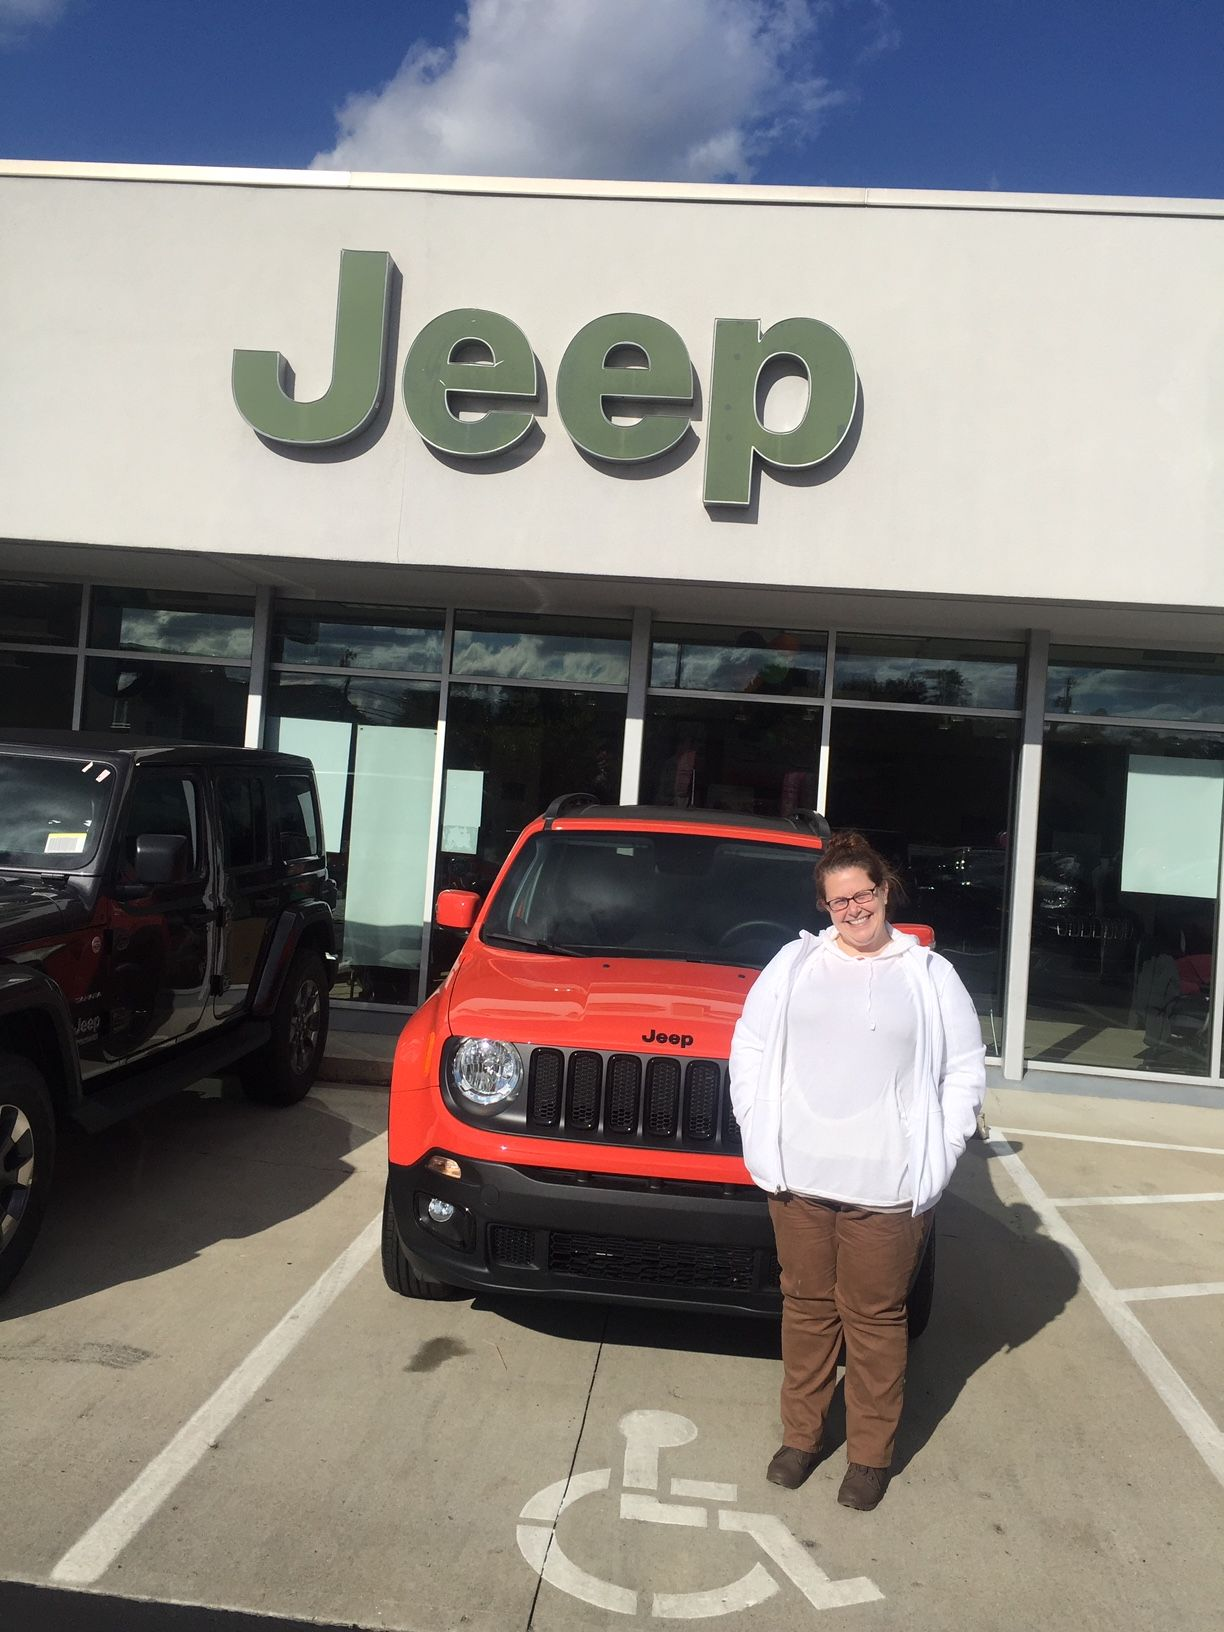 Pin By Zimmer Chrysler Dodge Jeep Ram On Our Clients At Zimmer Jeep Cars Near Me Jeep Renegade